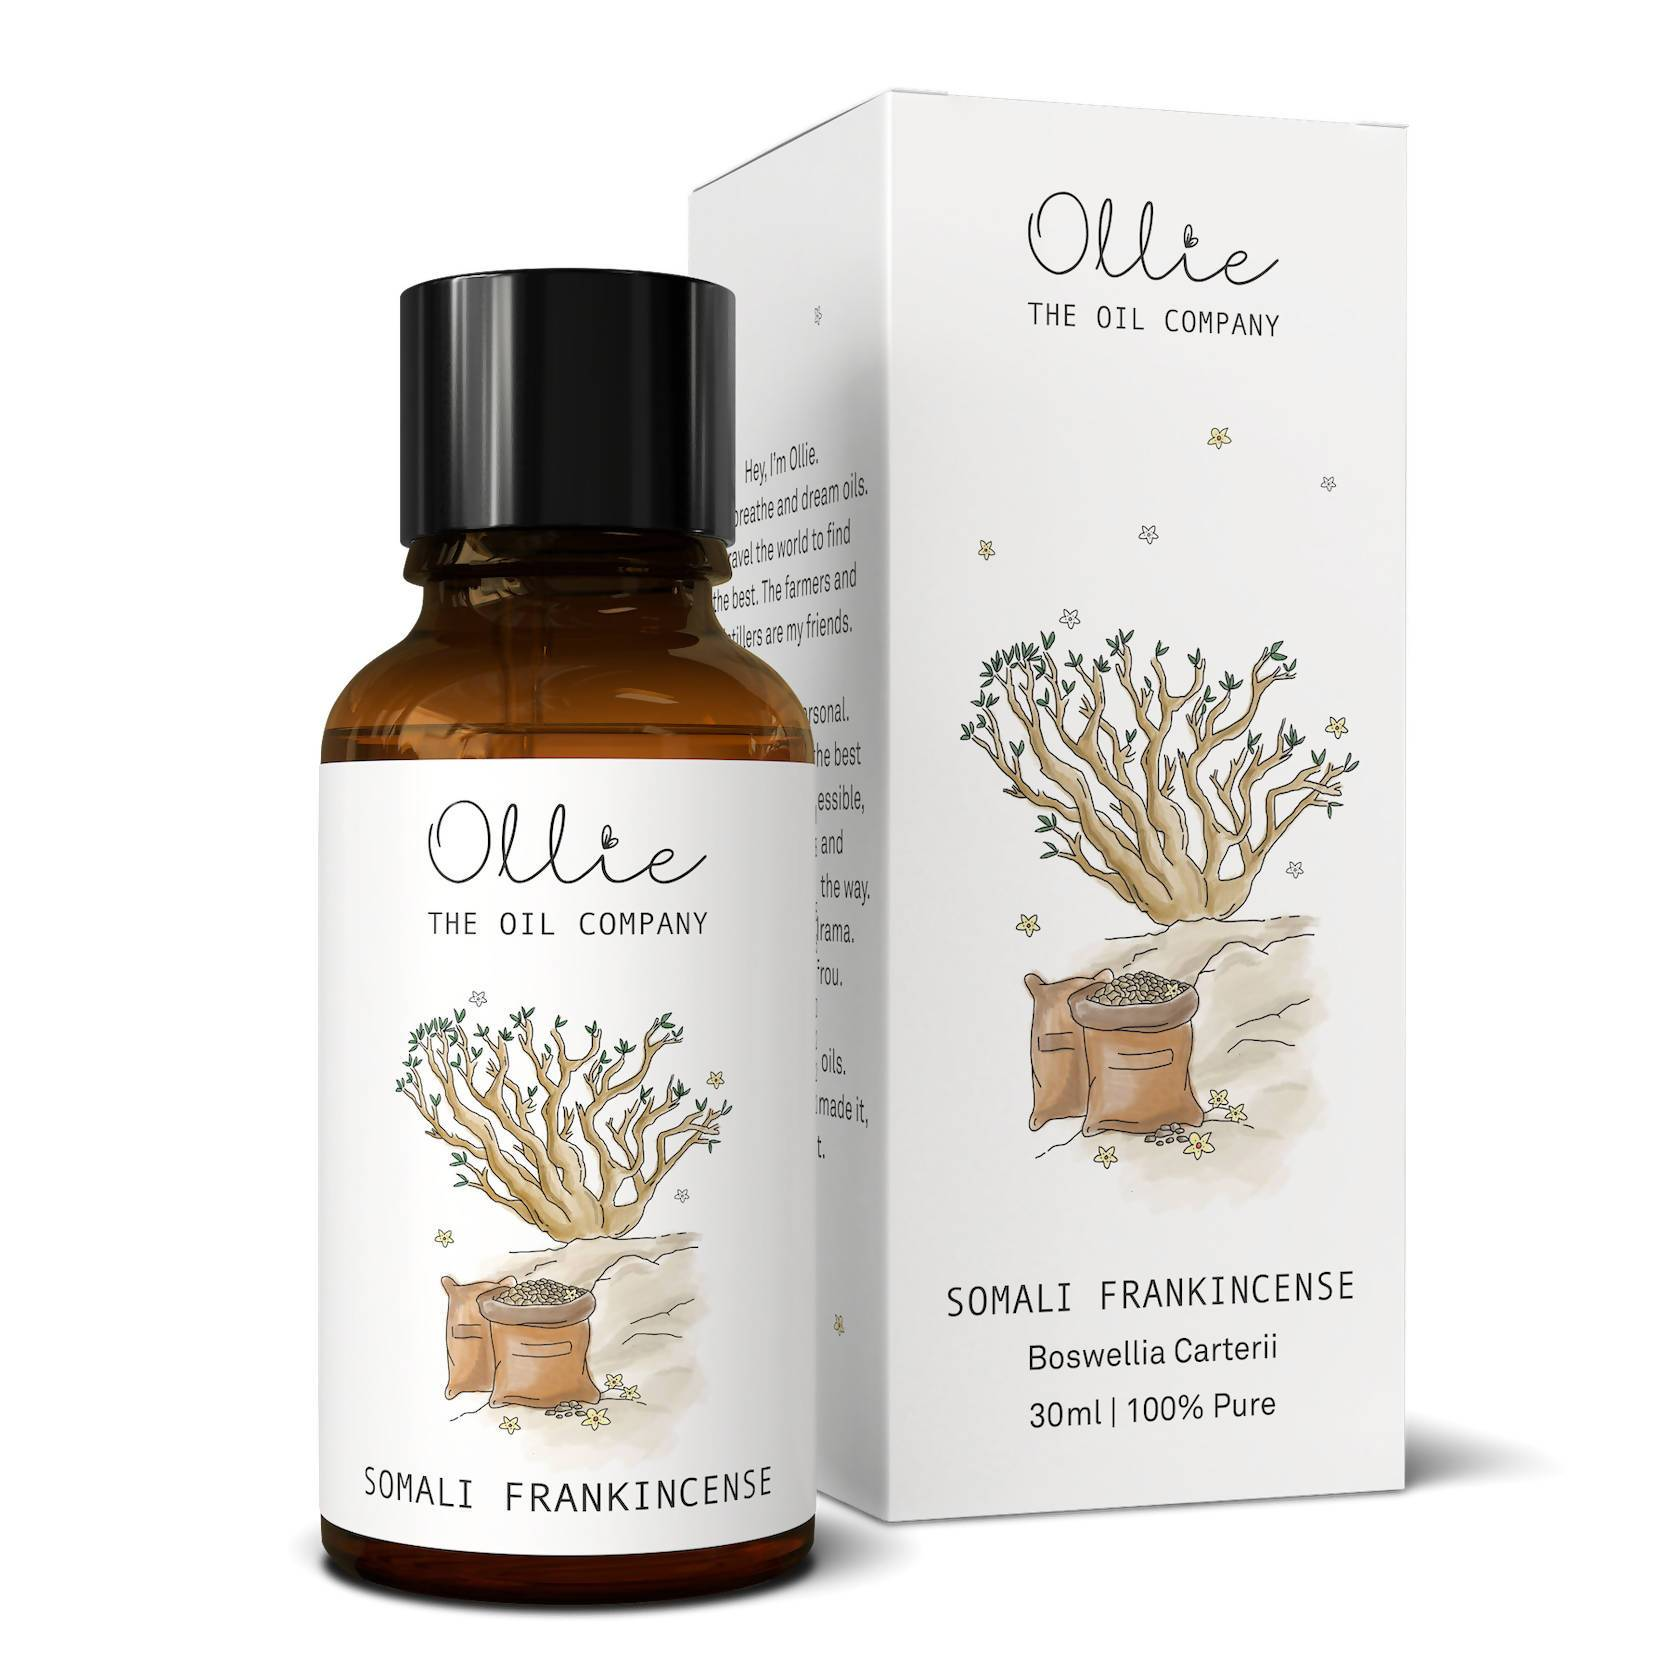 Ollie Somali Frankincense Essential Oil - Essential Oils - Ollie - Naiise